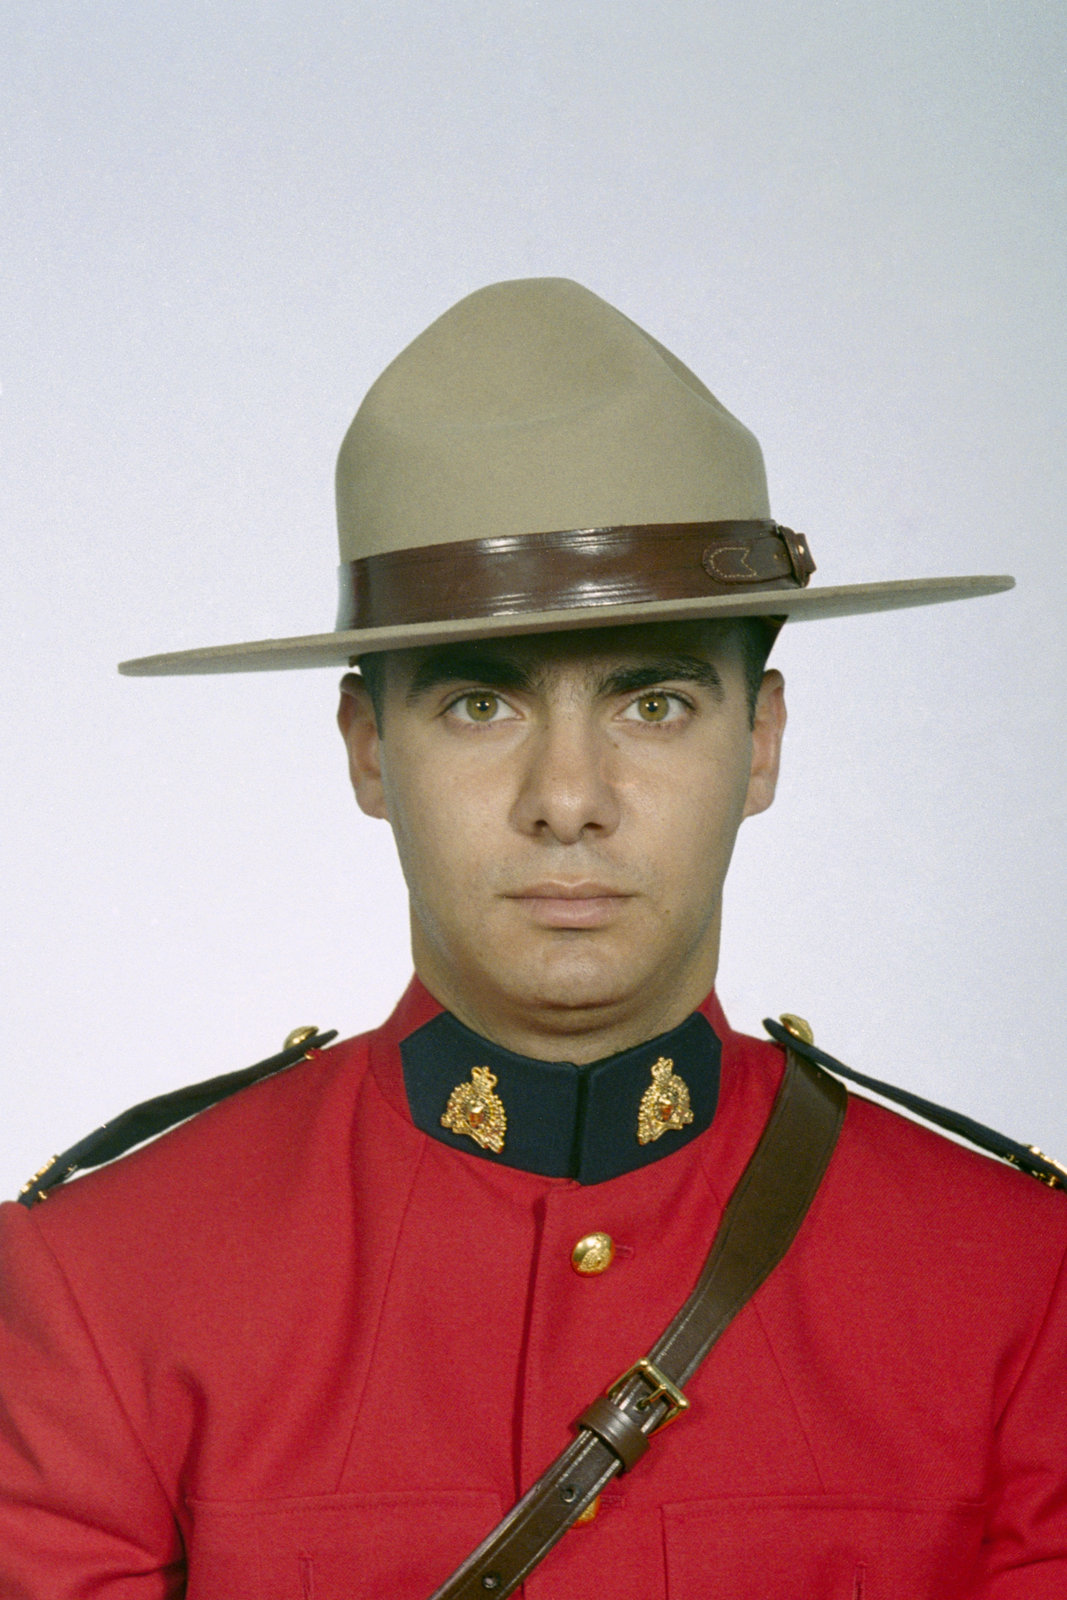 Constable Wael Toufic Audi– © Her Majesty the Queen in Right of Canada as represented by the Royal Canadian Mounted Police